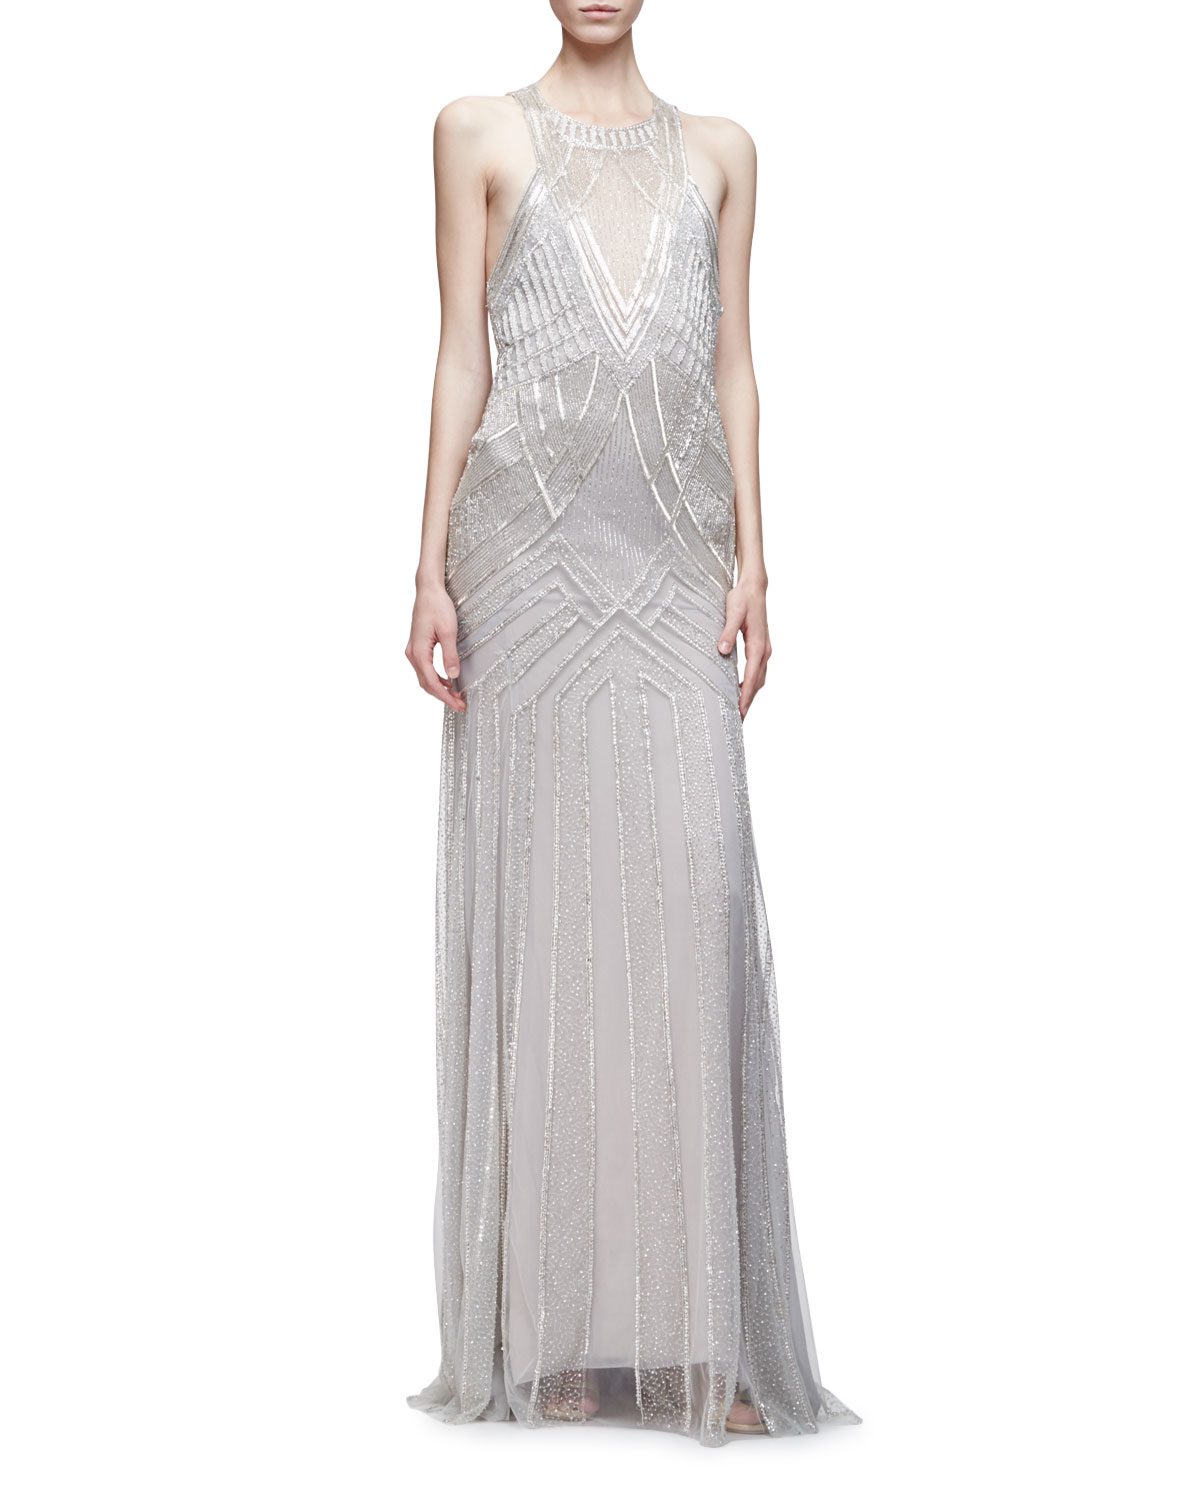 Lyst - Monique Lhuillier Sleeveless Embellished Trumpet Gown in Metallic